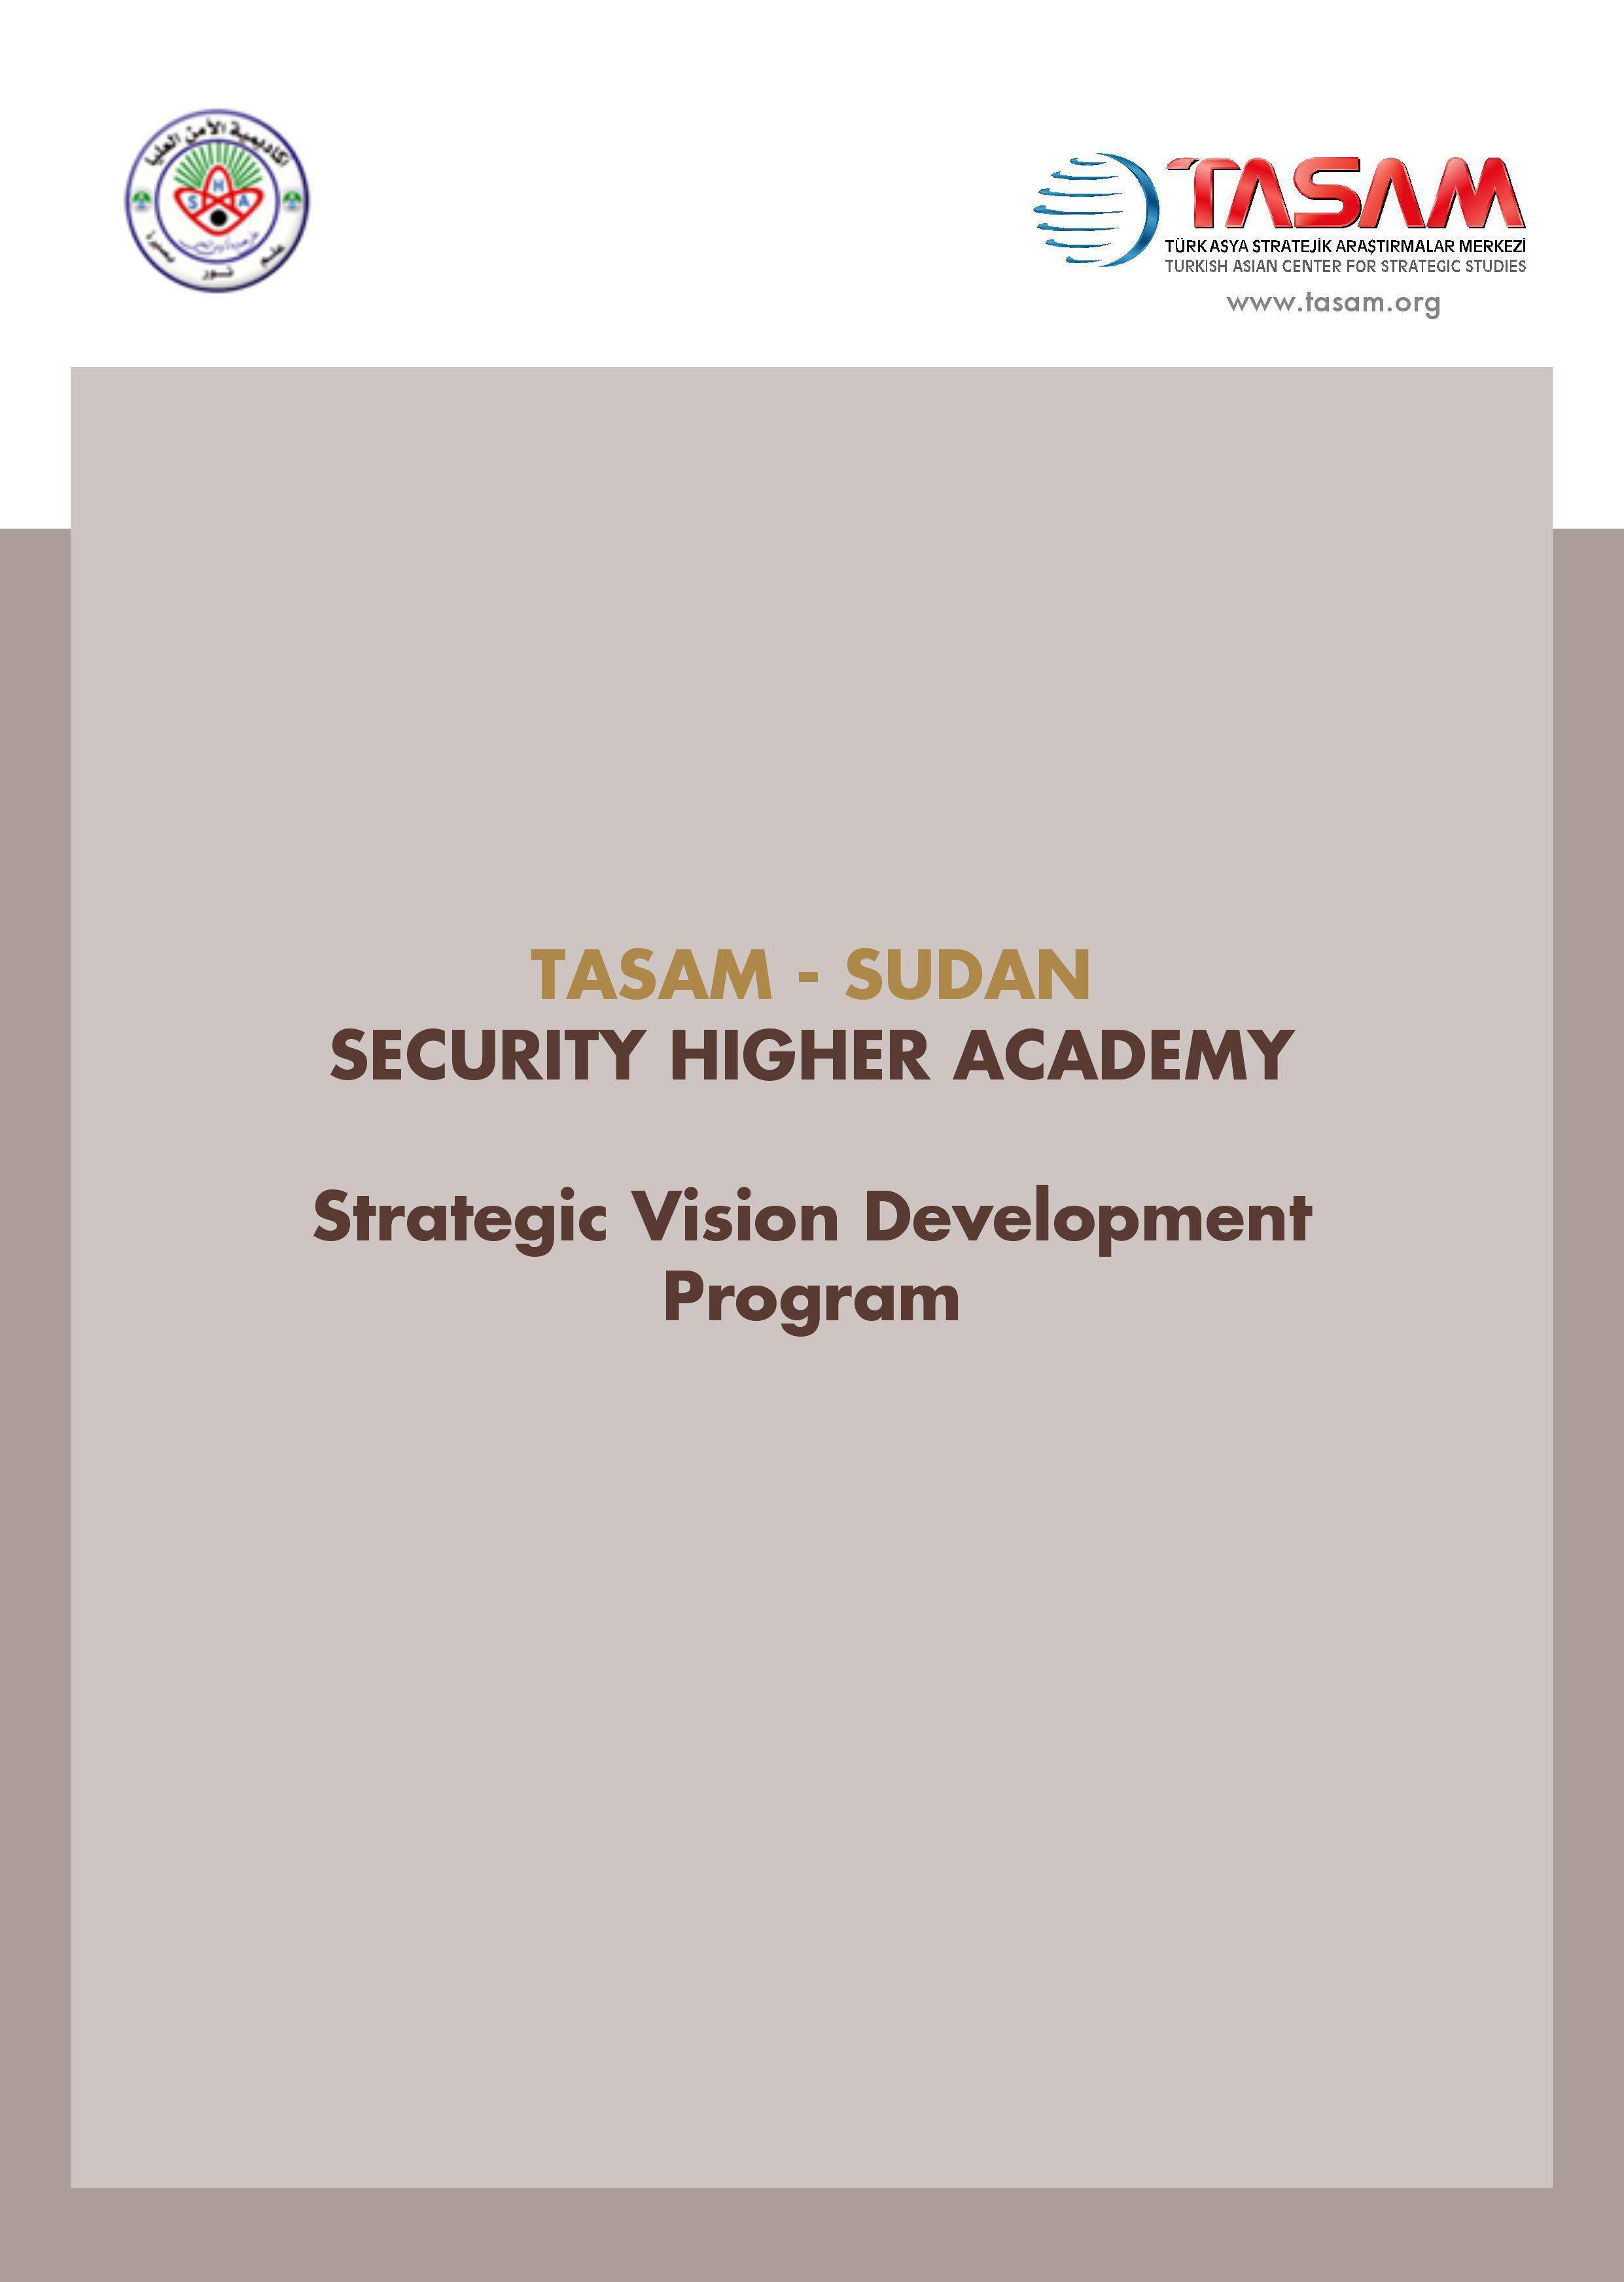 TASAM - Higher Security Academy in Sudan